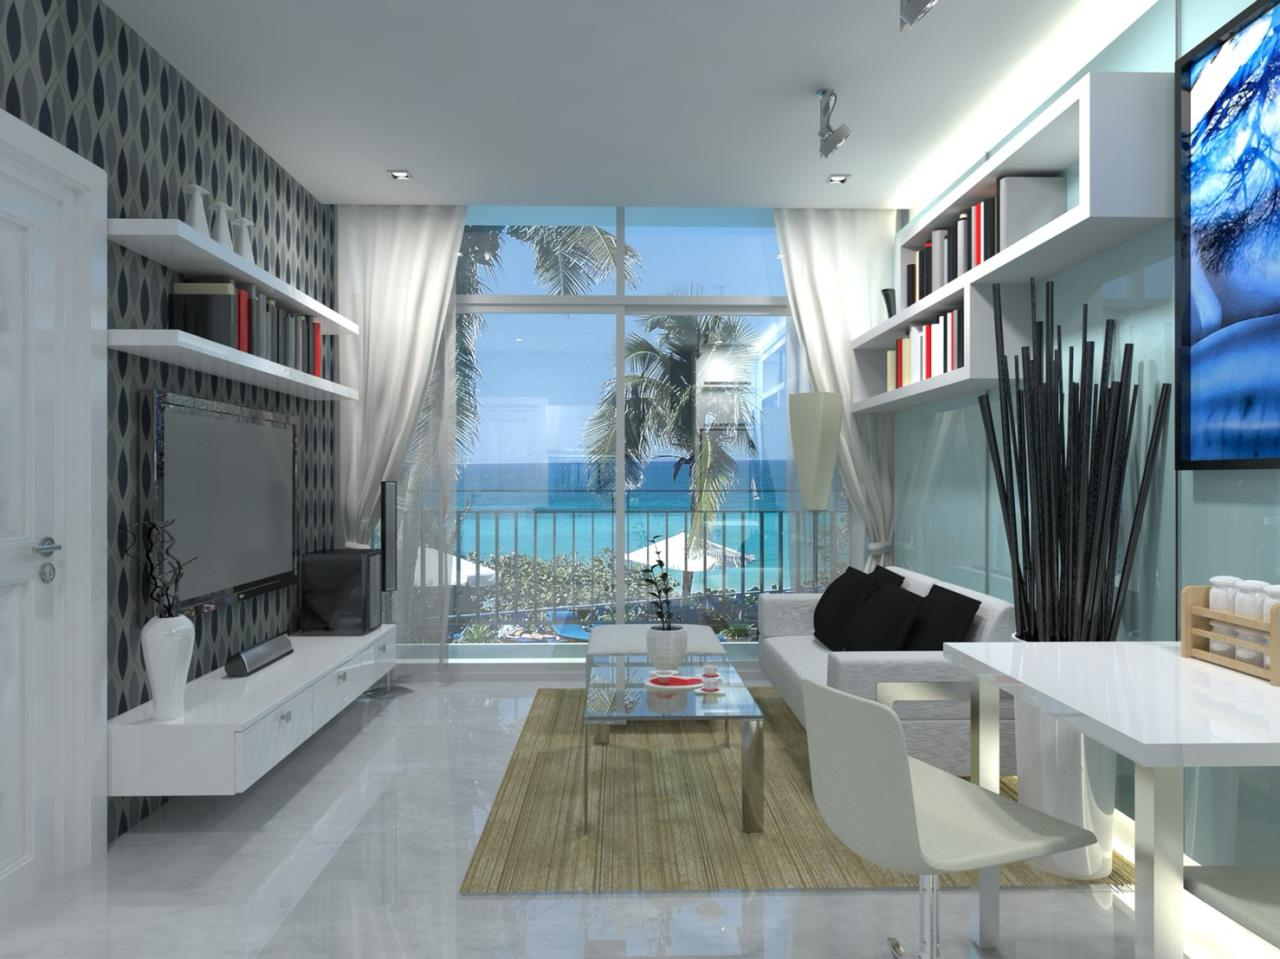 Signature Realty ( Thailand ) Co Ltd Agency's Furnished 1bedroom 46 sq.m condo with jacuzzi floor 2-10 at The Grand Jomtein Beach Pattaya 5